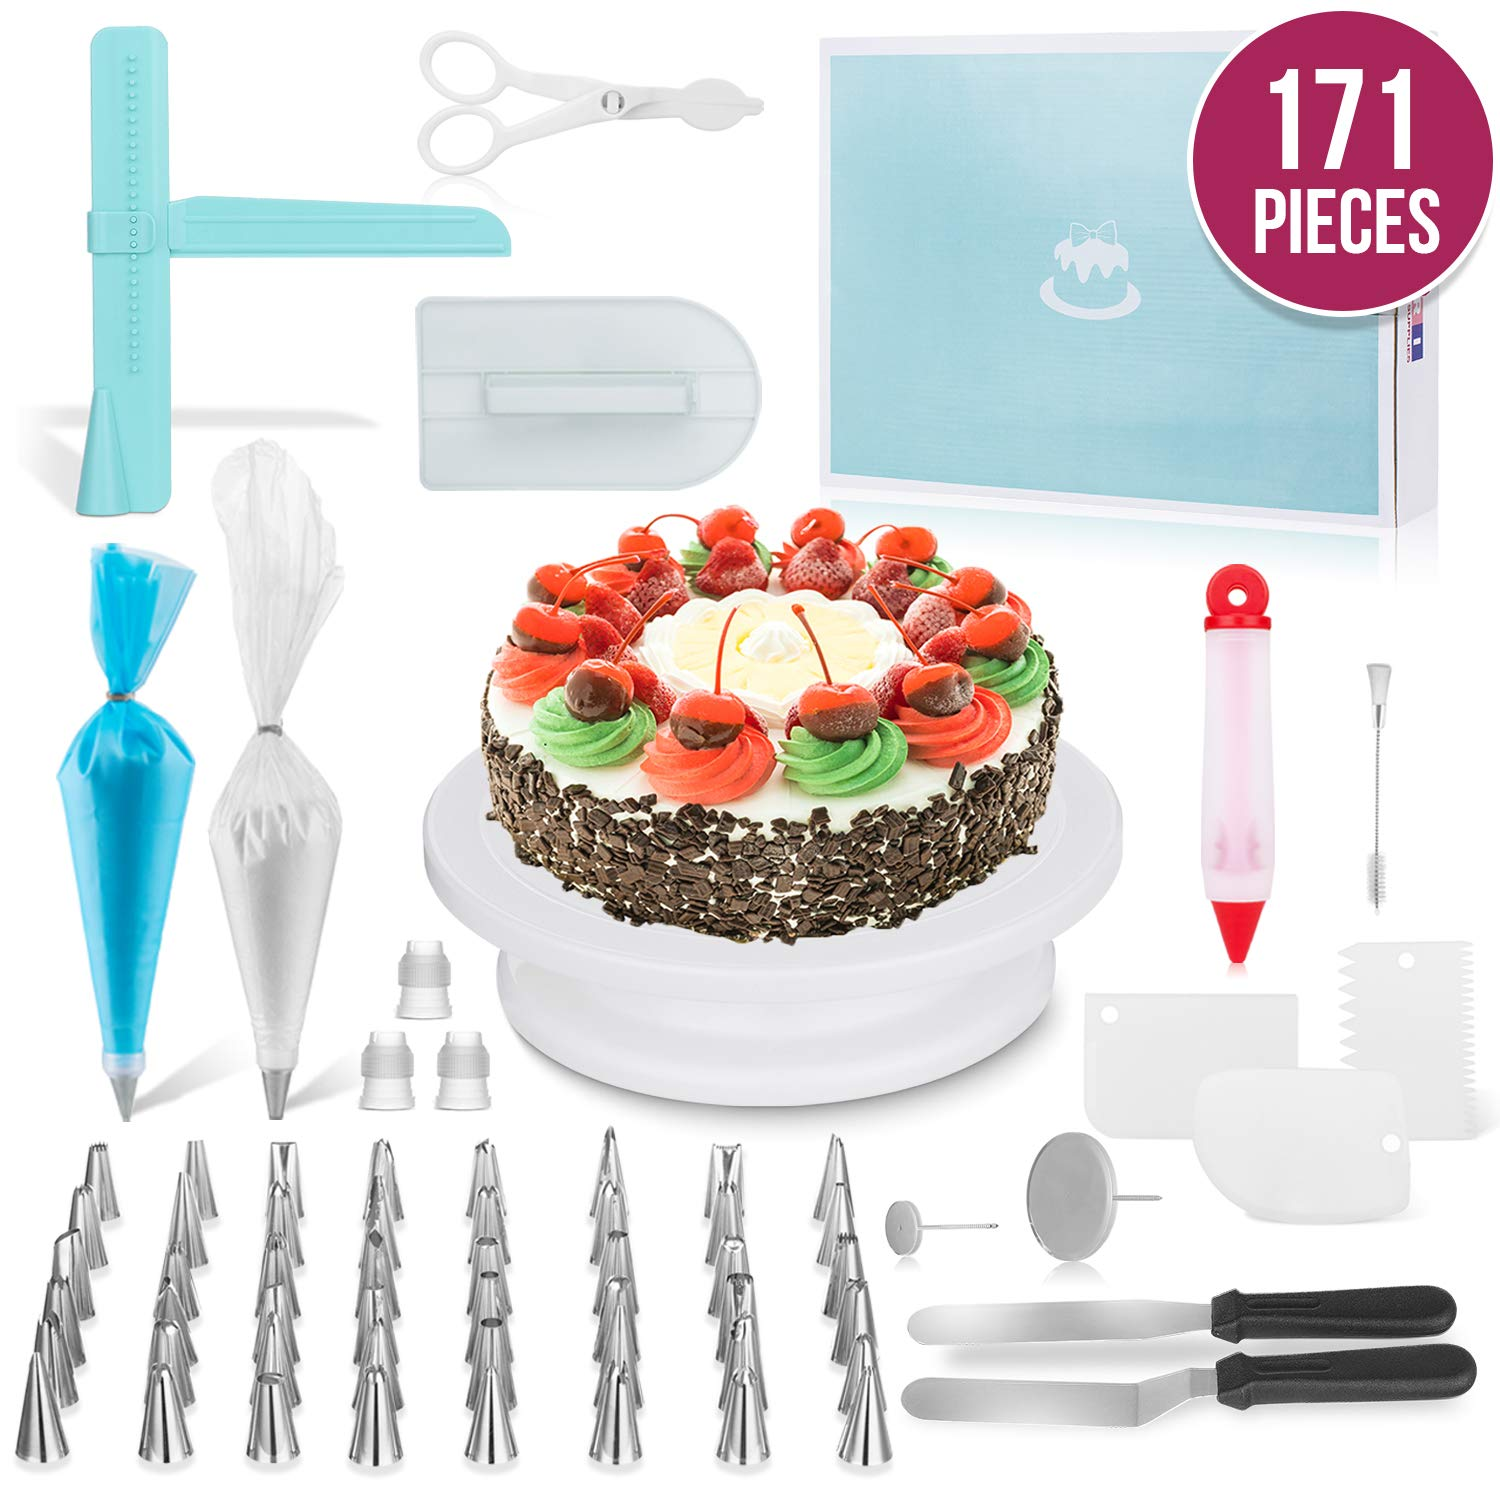 MERRI Cake Decorating Supplies 171 Pcs| Includes All Essential Baking Supplies & Pastry Tools - Rotating Turntable Stand, Frosting, Piping Bags and Tips Set, Icing Spatula, Cake Smoother by MERRI